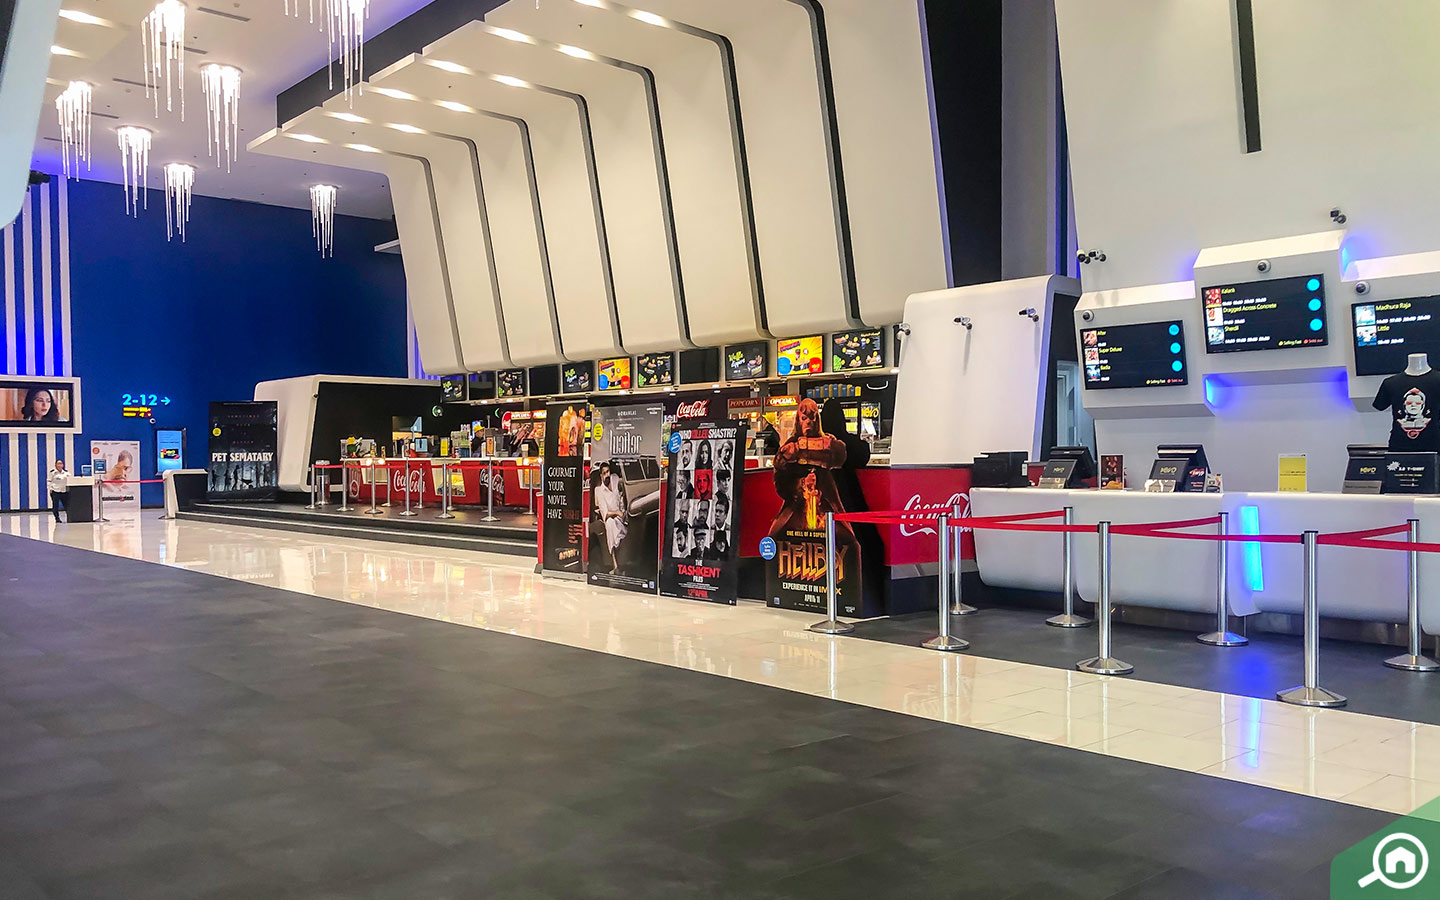 Inside view of one of the cinemas with credit card movie offers in Dubai